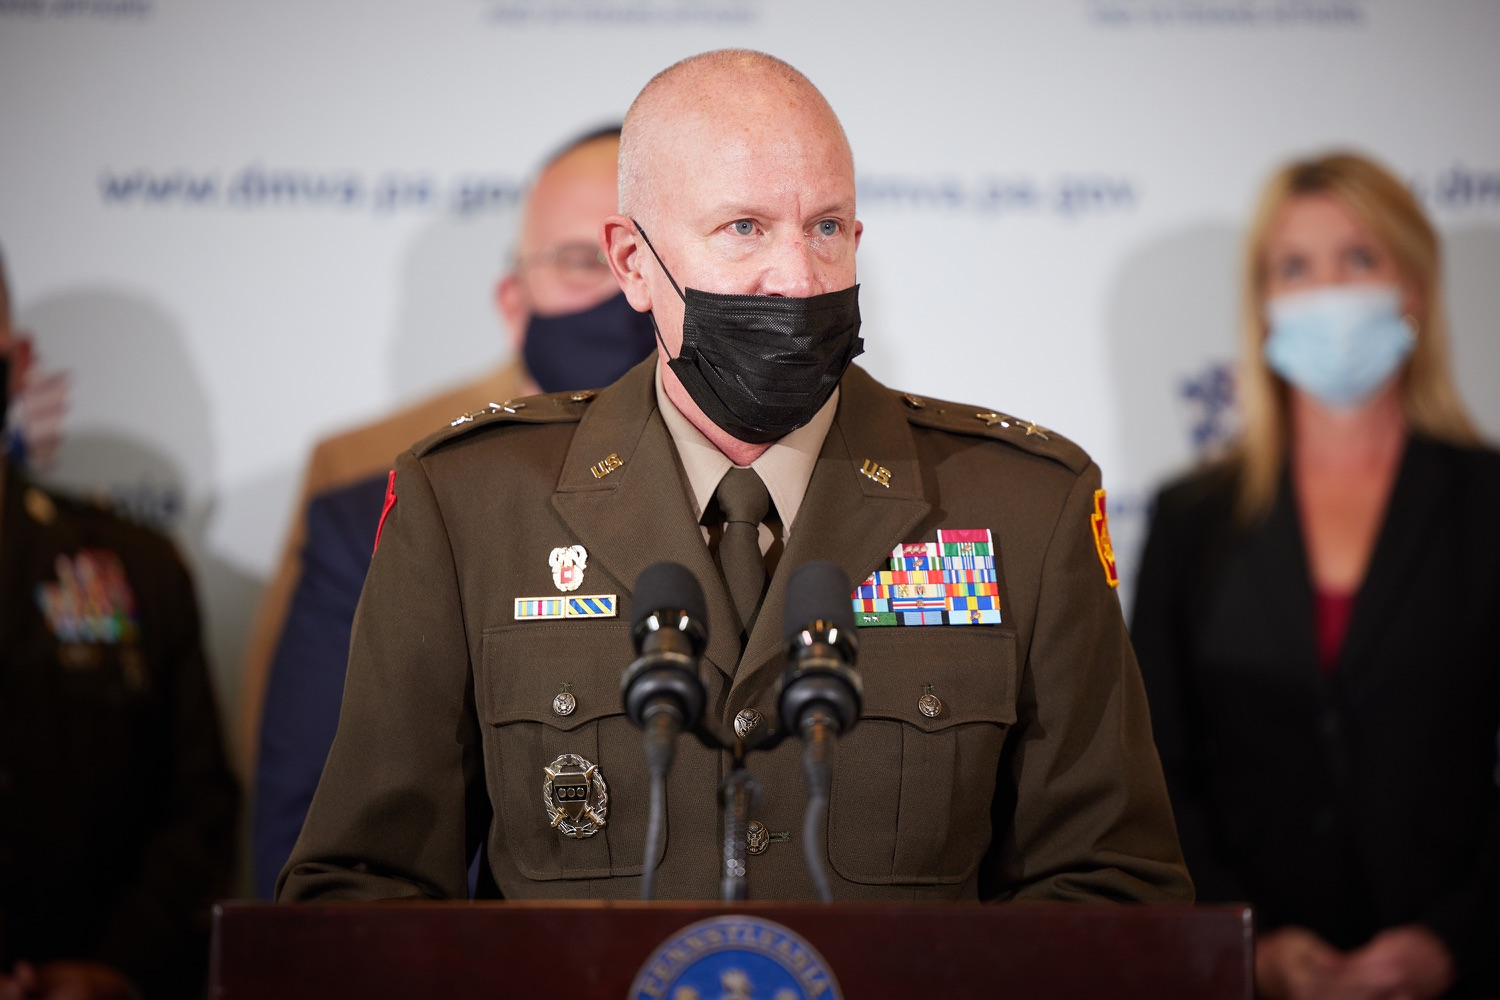 """<a href=""""https://filesource.wostreaming.net/commonwealthofpa/photo/19088_dmva_suicidePrevention_dz_006.jpg"""" target=""""_blank"""">⇣Download Photo<br></a>Adjutant General of Pennsylvania Major General Mark J. Schindler speaks to the press.  Members of the Wolf administration gathered today at the YWCA Greater  Harrisburg to raise awareness about veteran suicide, a health crisis taking the lives of about 20  veterans a day nationwide. The event was held in recognition of September being National Suicide Prevention Month.  Harrisburg, PA   Sept. 9, 2021.."""